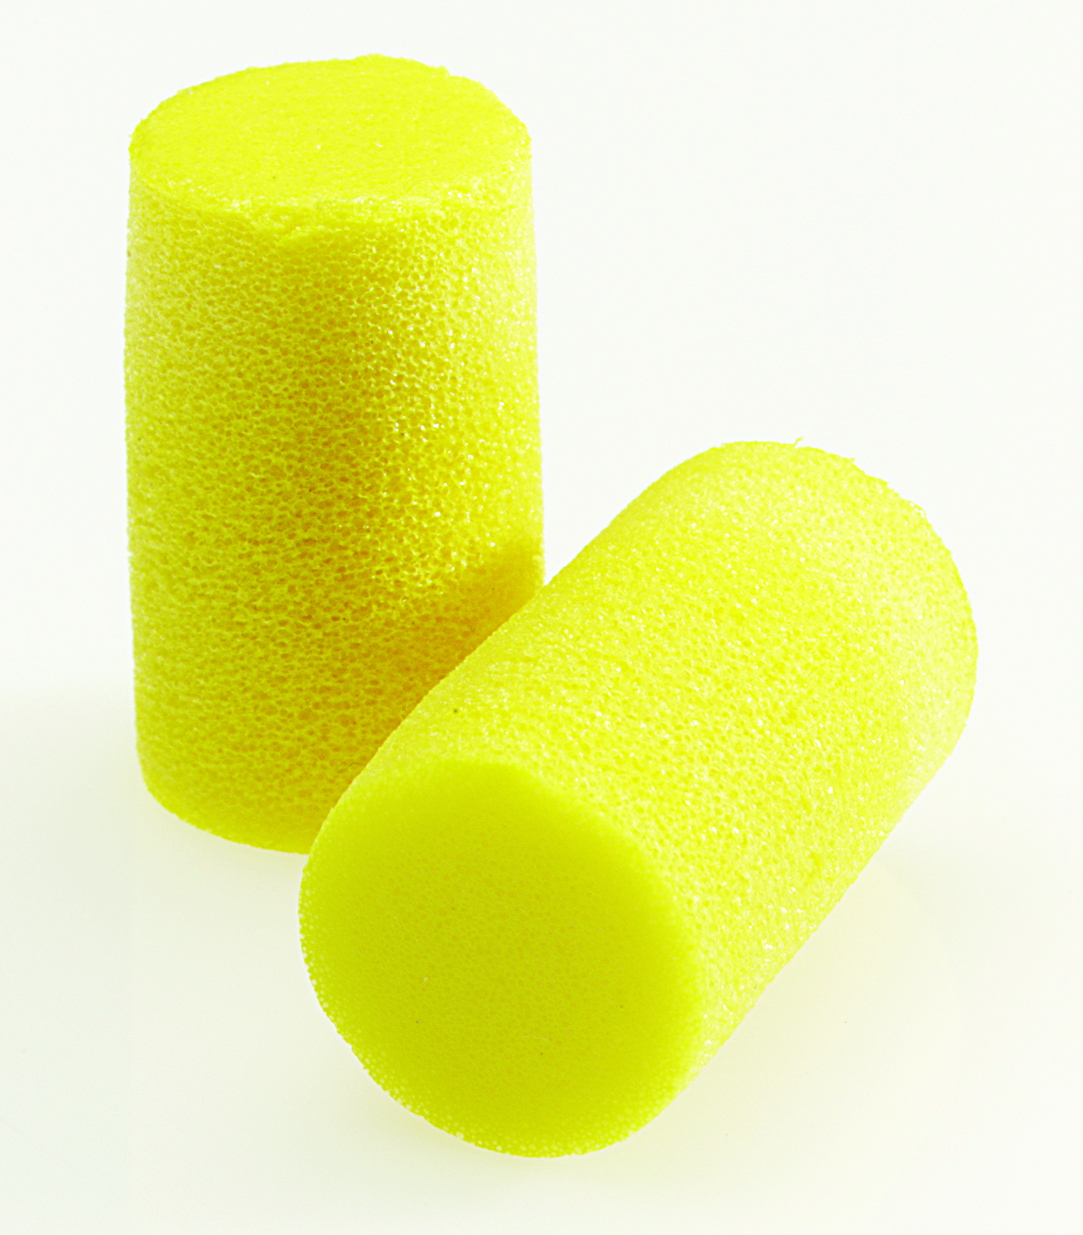 310-1001 - 3M™ E-A-R™ Classic™ Earplugs-(NRR)* 29 dB, Classic Uncorded, Pillow Pack-----UOM: 200PR/BX